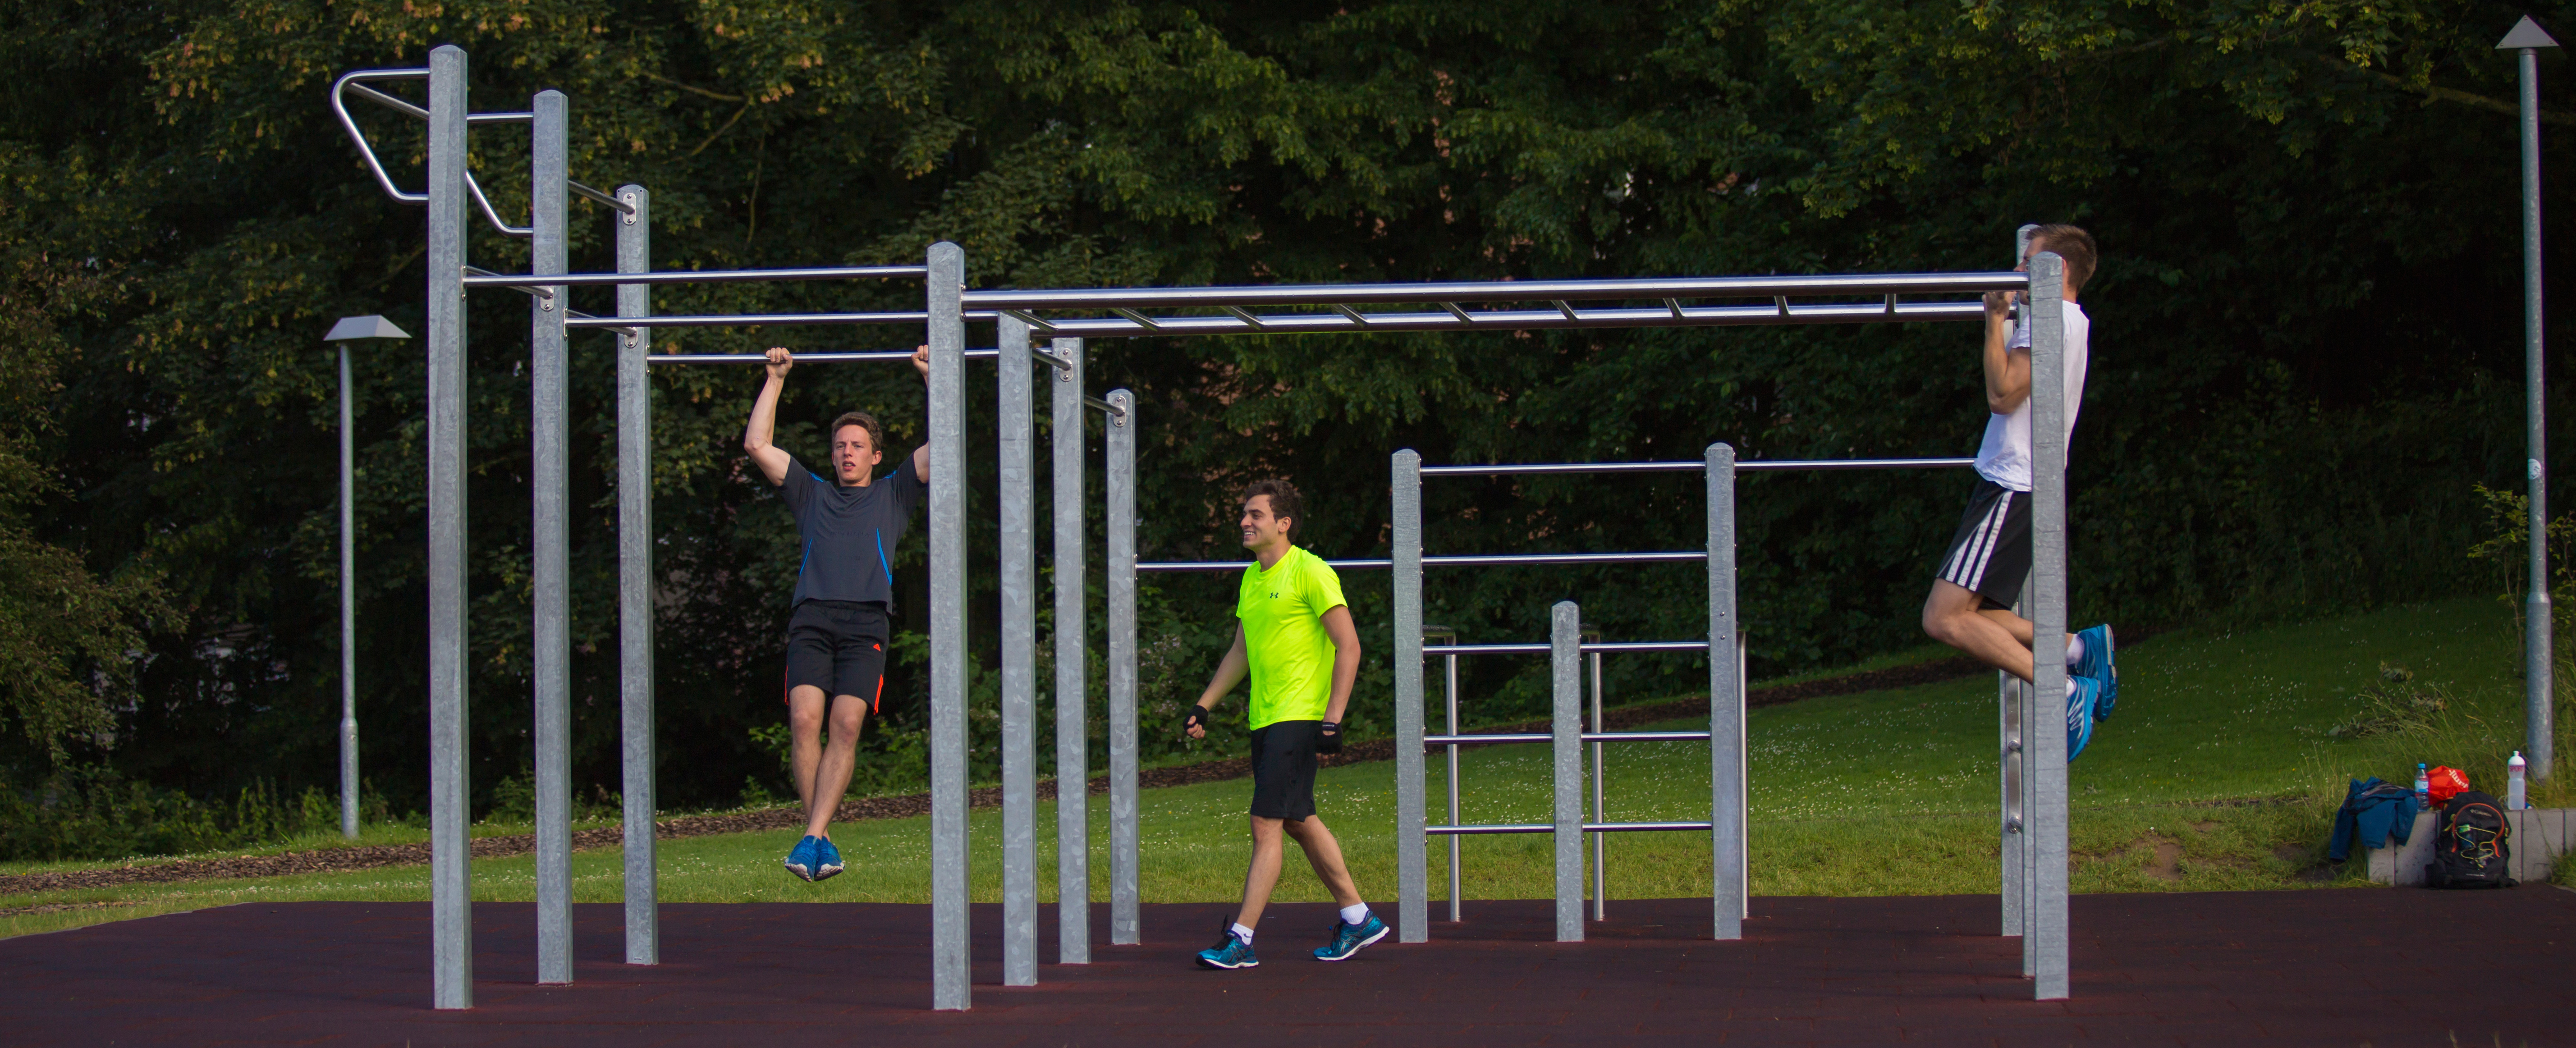 Outdoor Fitnessanlage 2